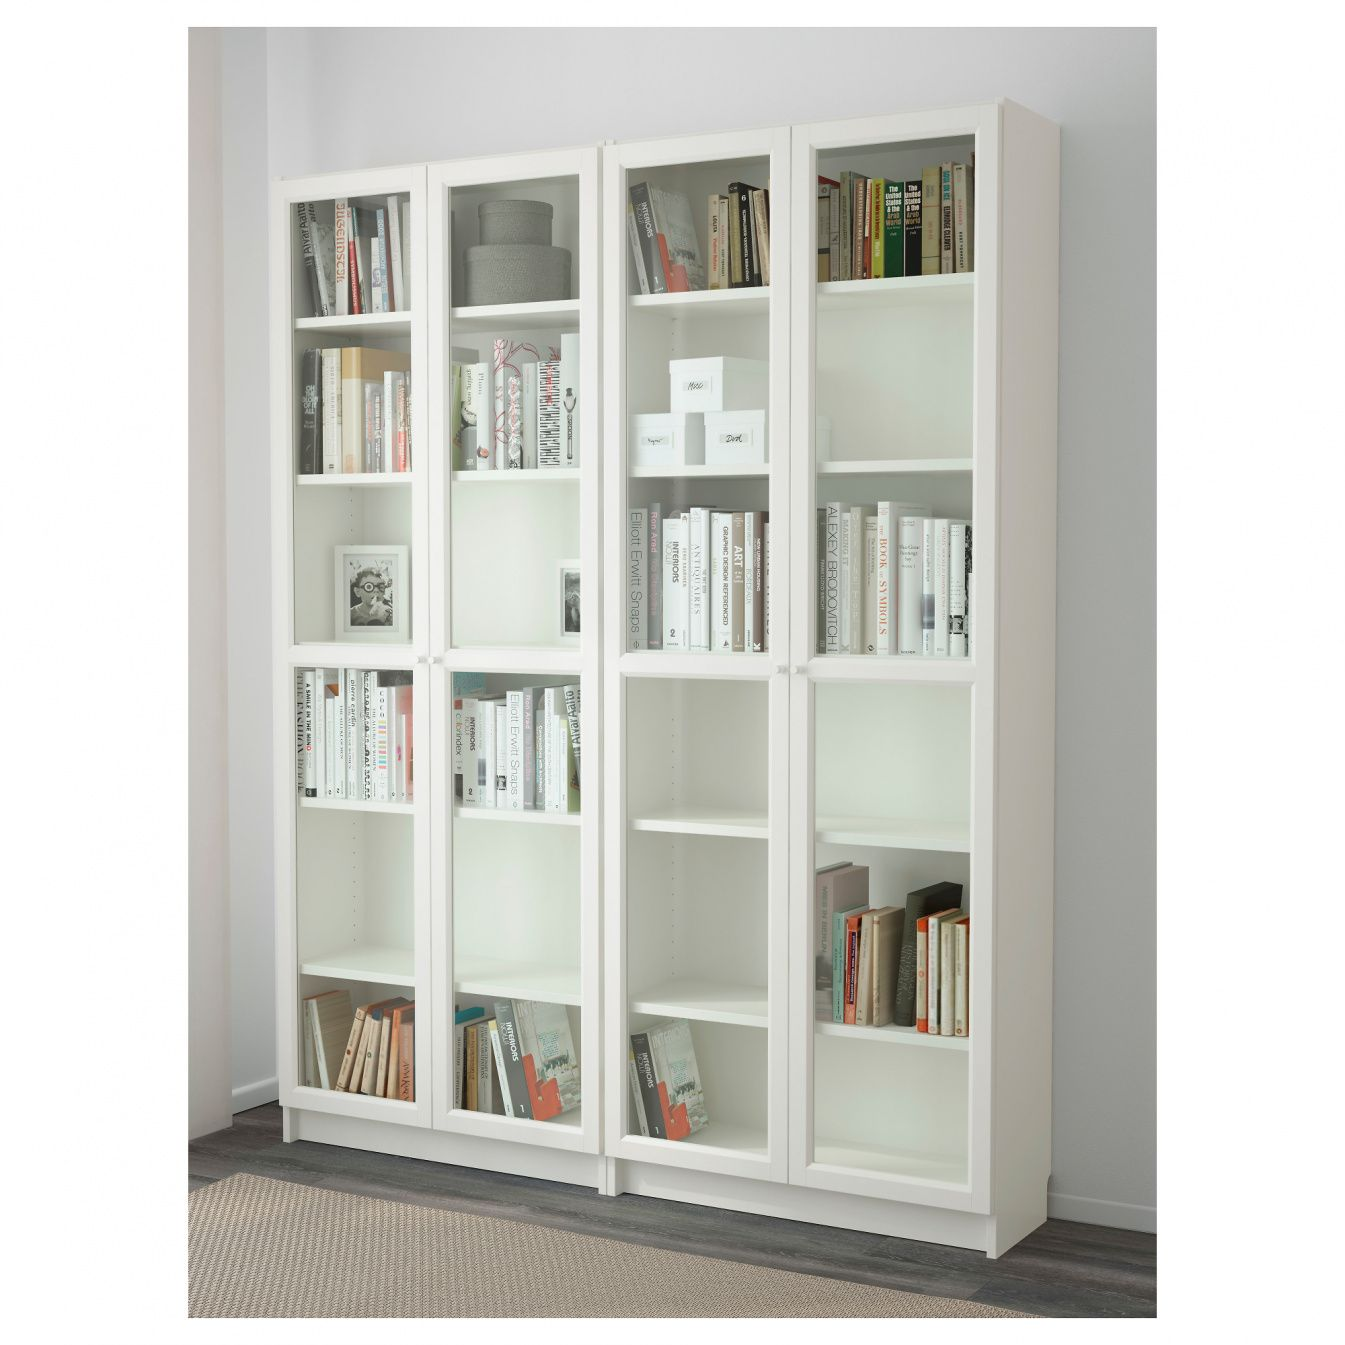 Ikea Billy Bookcase With Glass Doors Rustic Home Office  # Muebles Billy Ikea